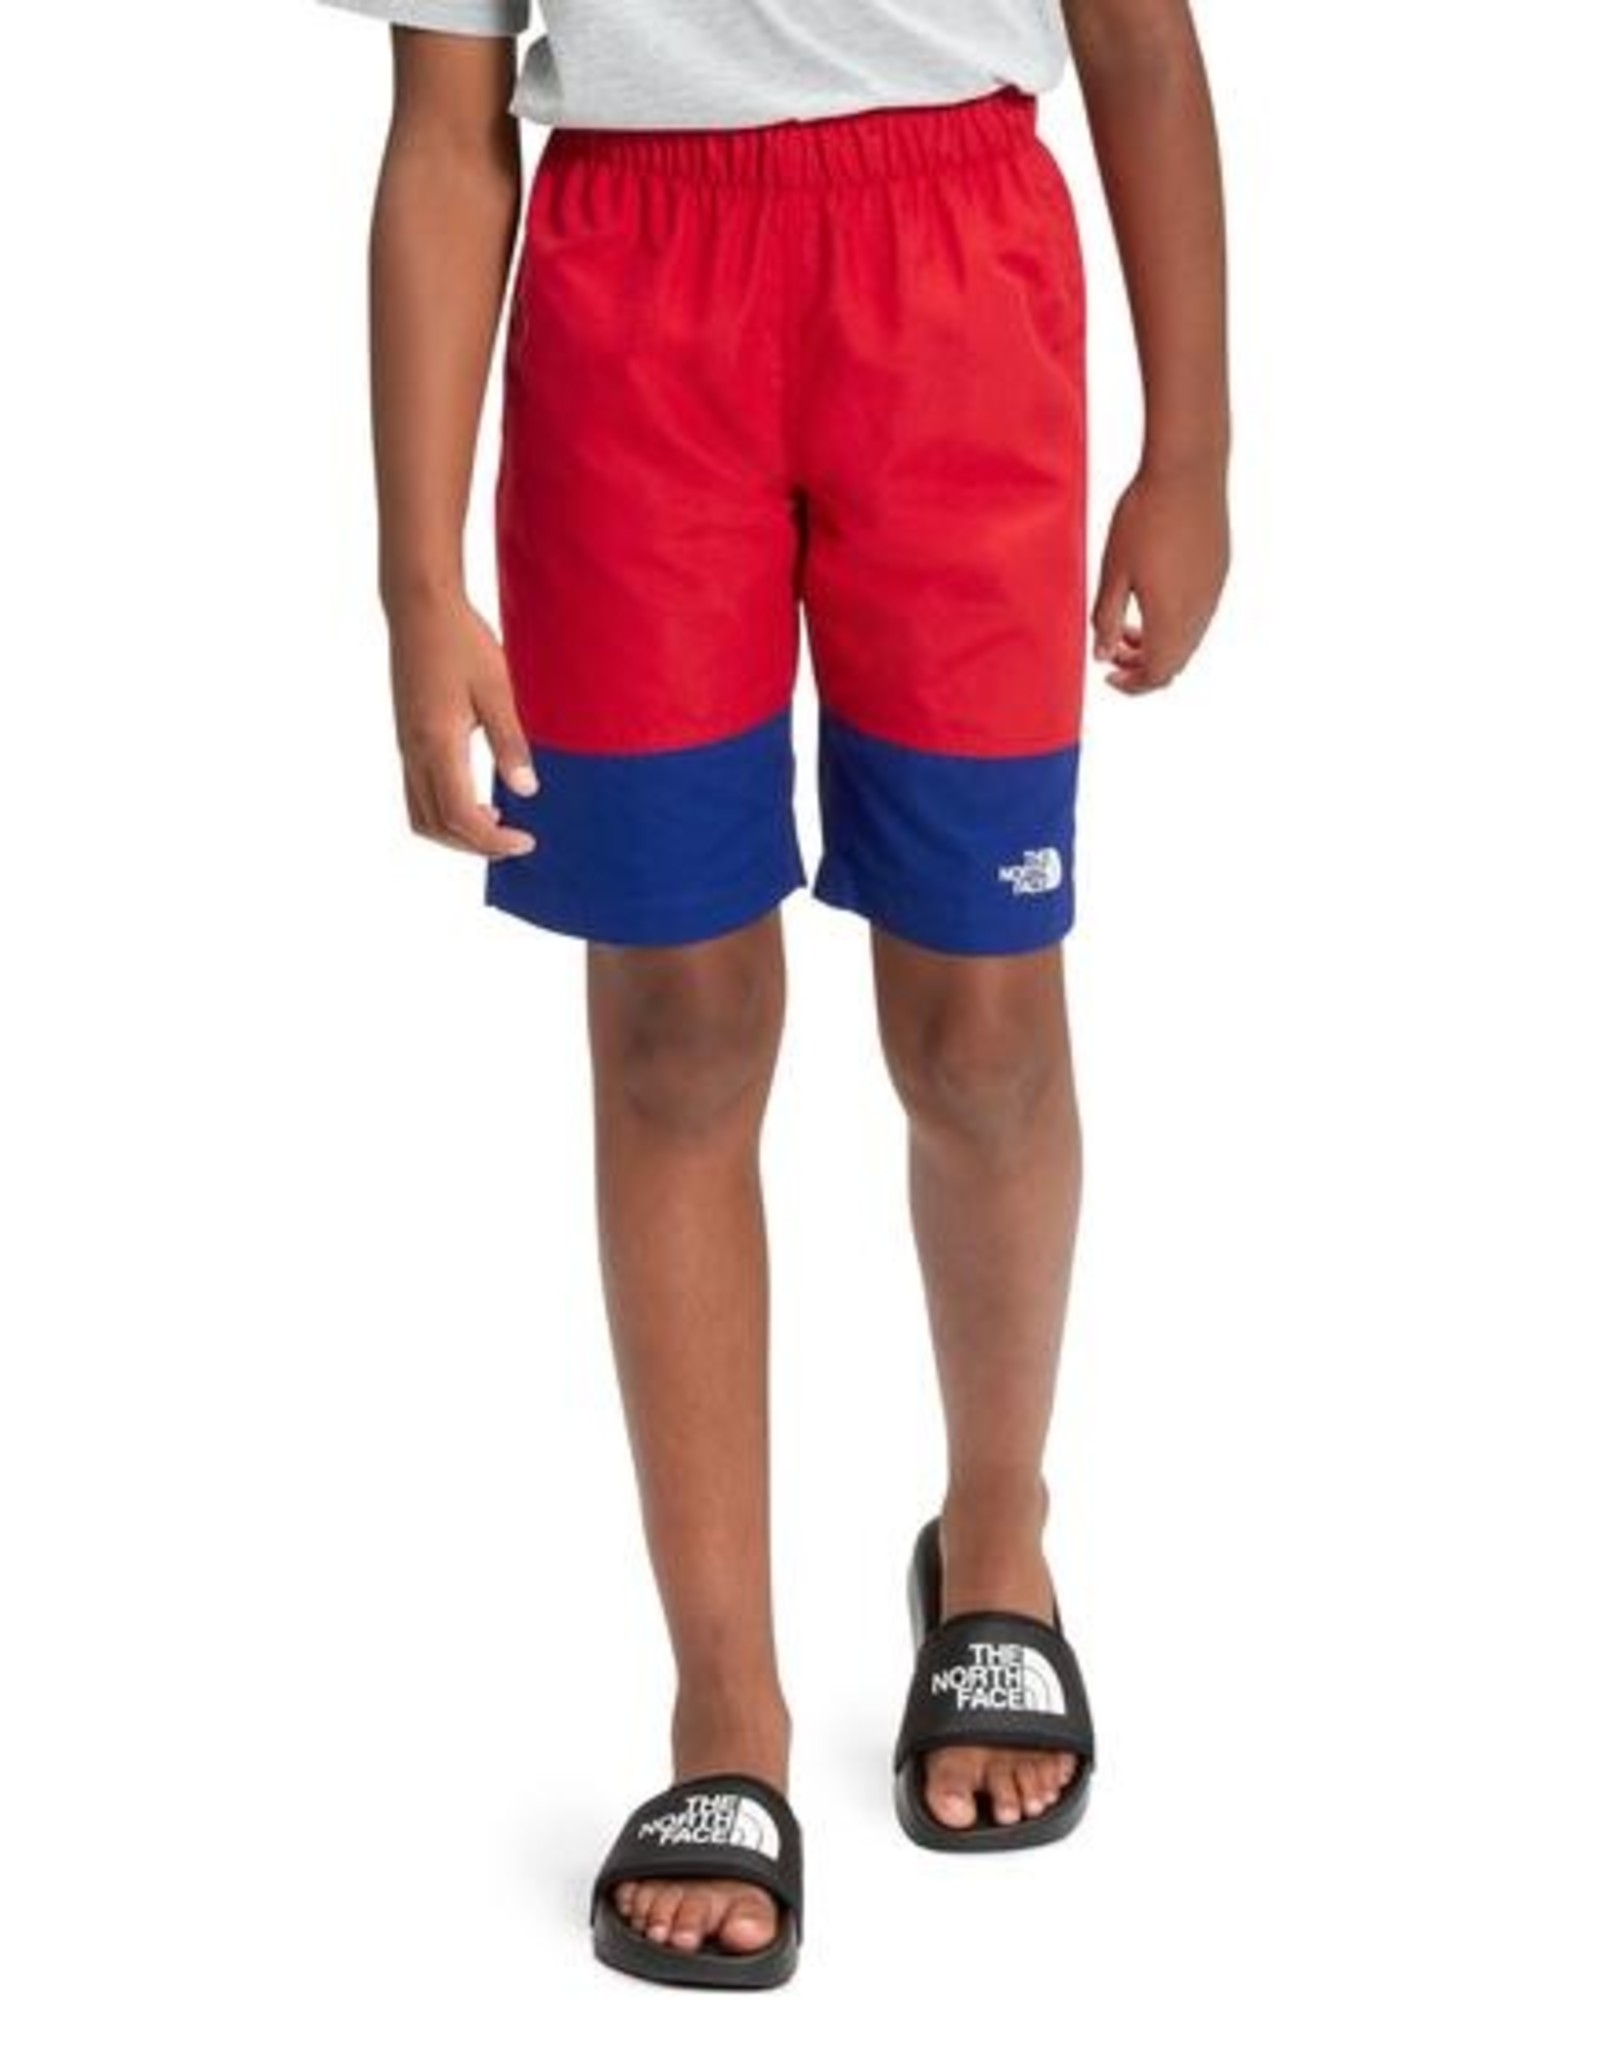 The North Face The North Face Boy's Class V Water Short -S2021